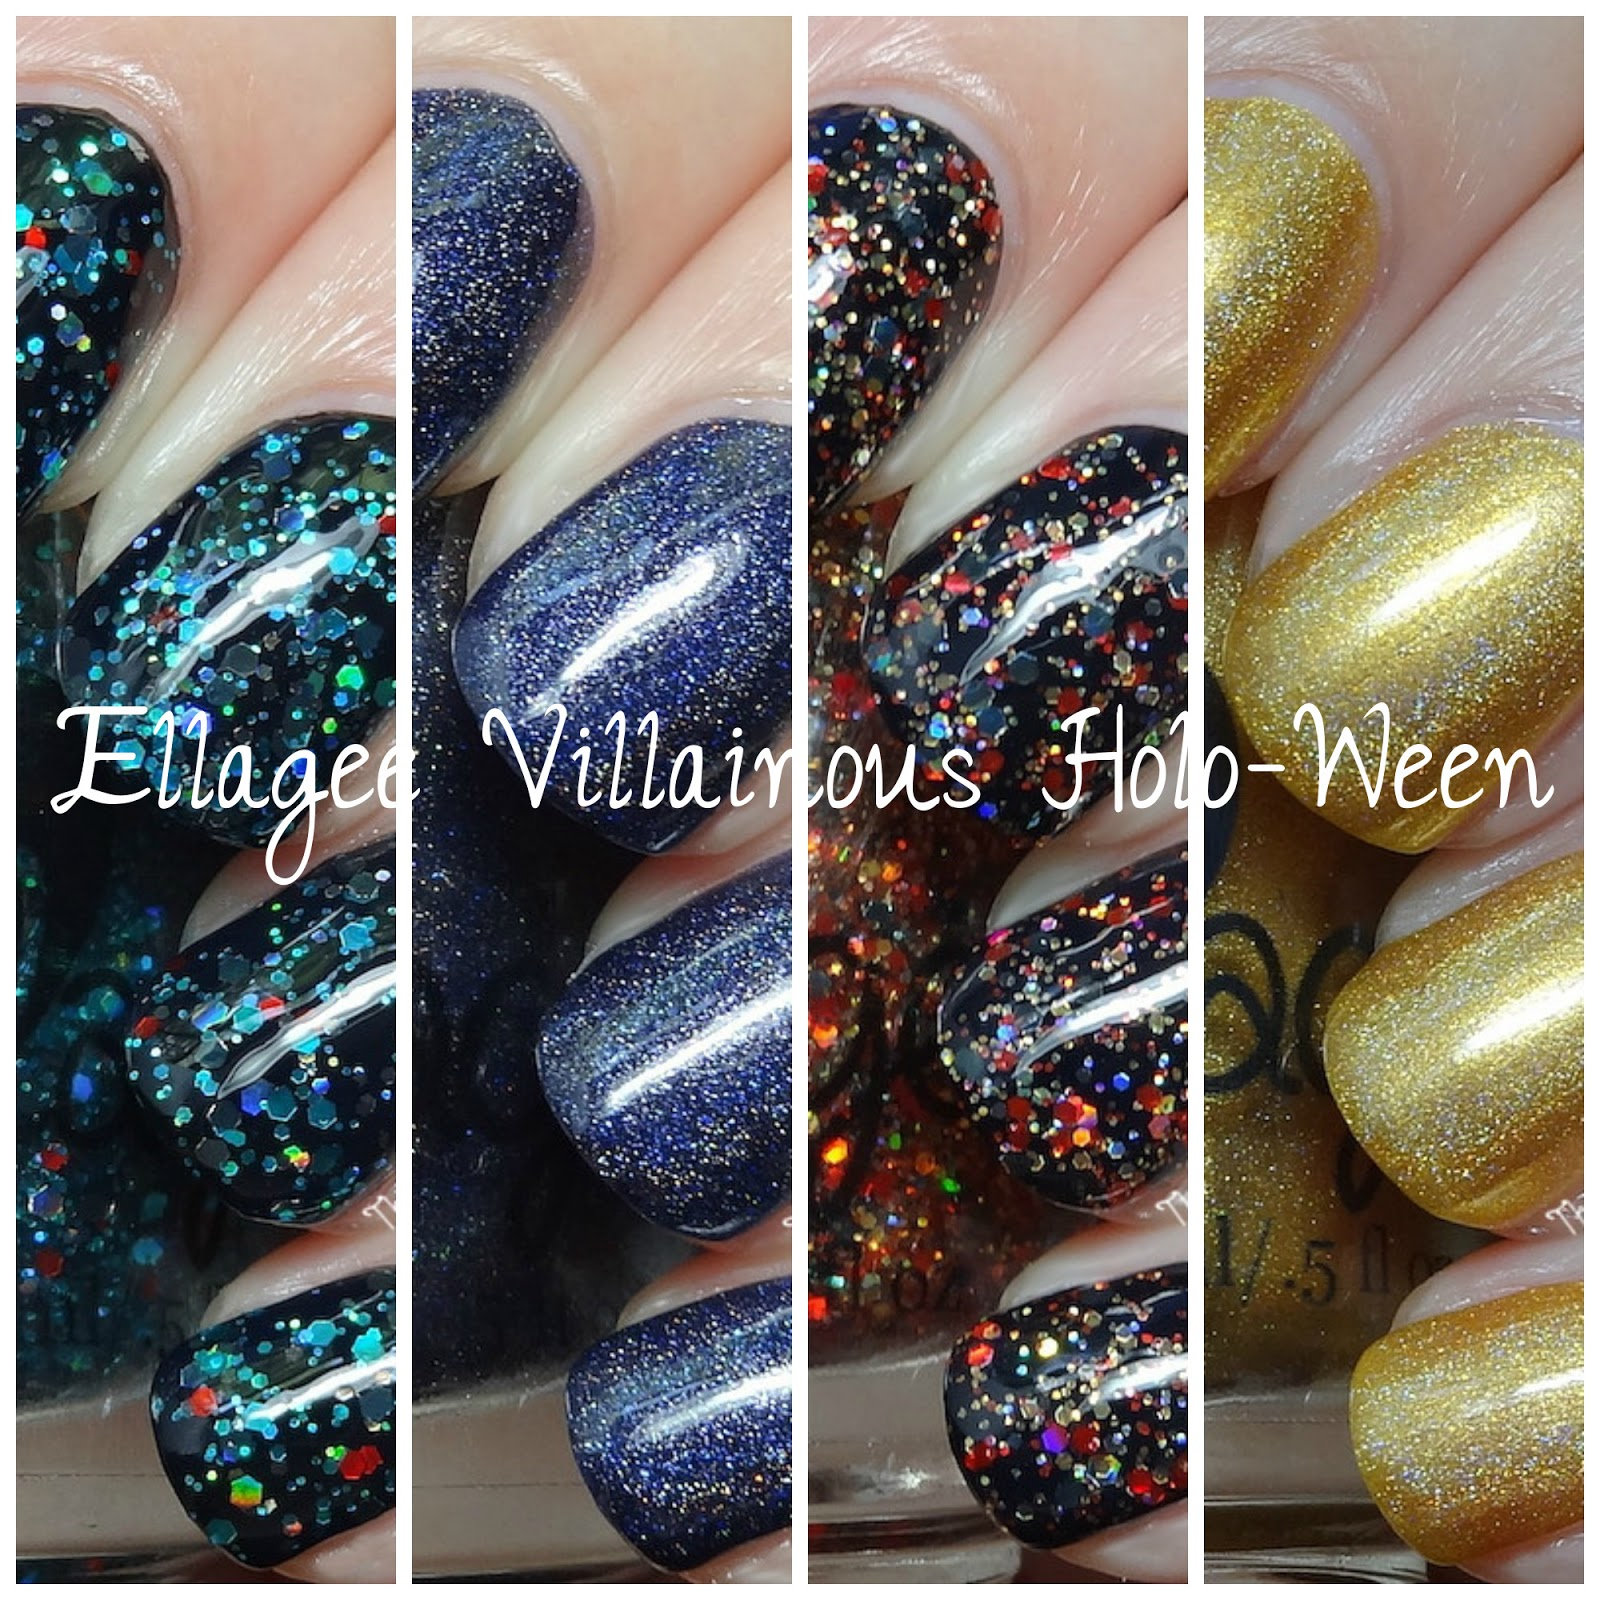 Ellagee Villainous Holo-ween Collection [Partial] Swatches & Review!